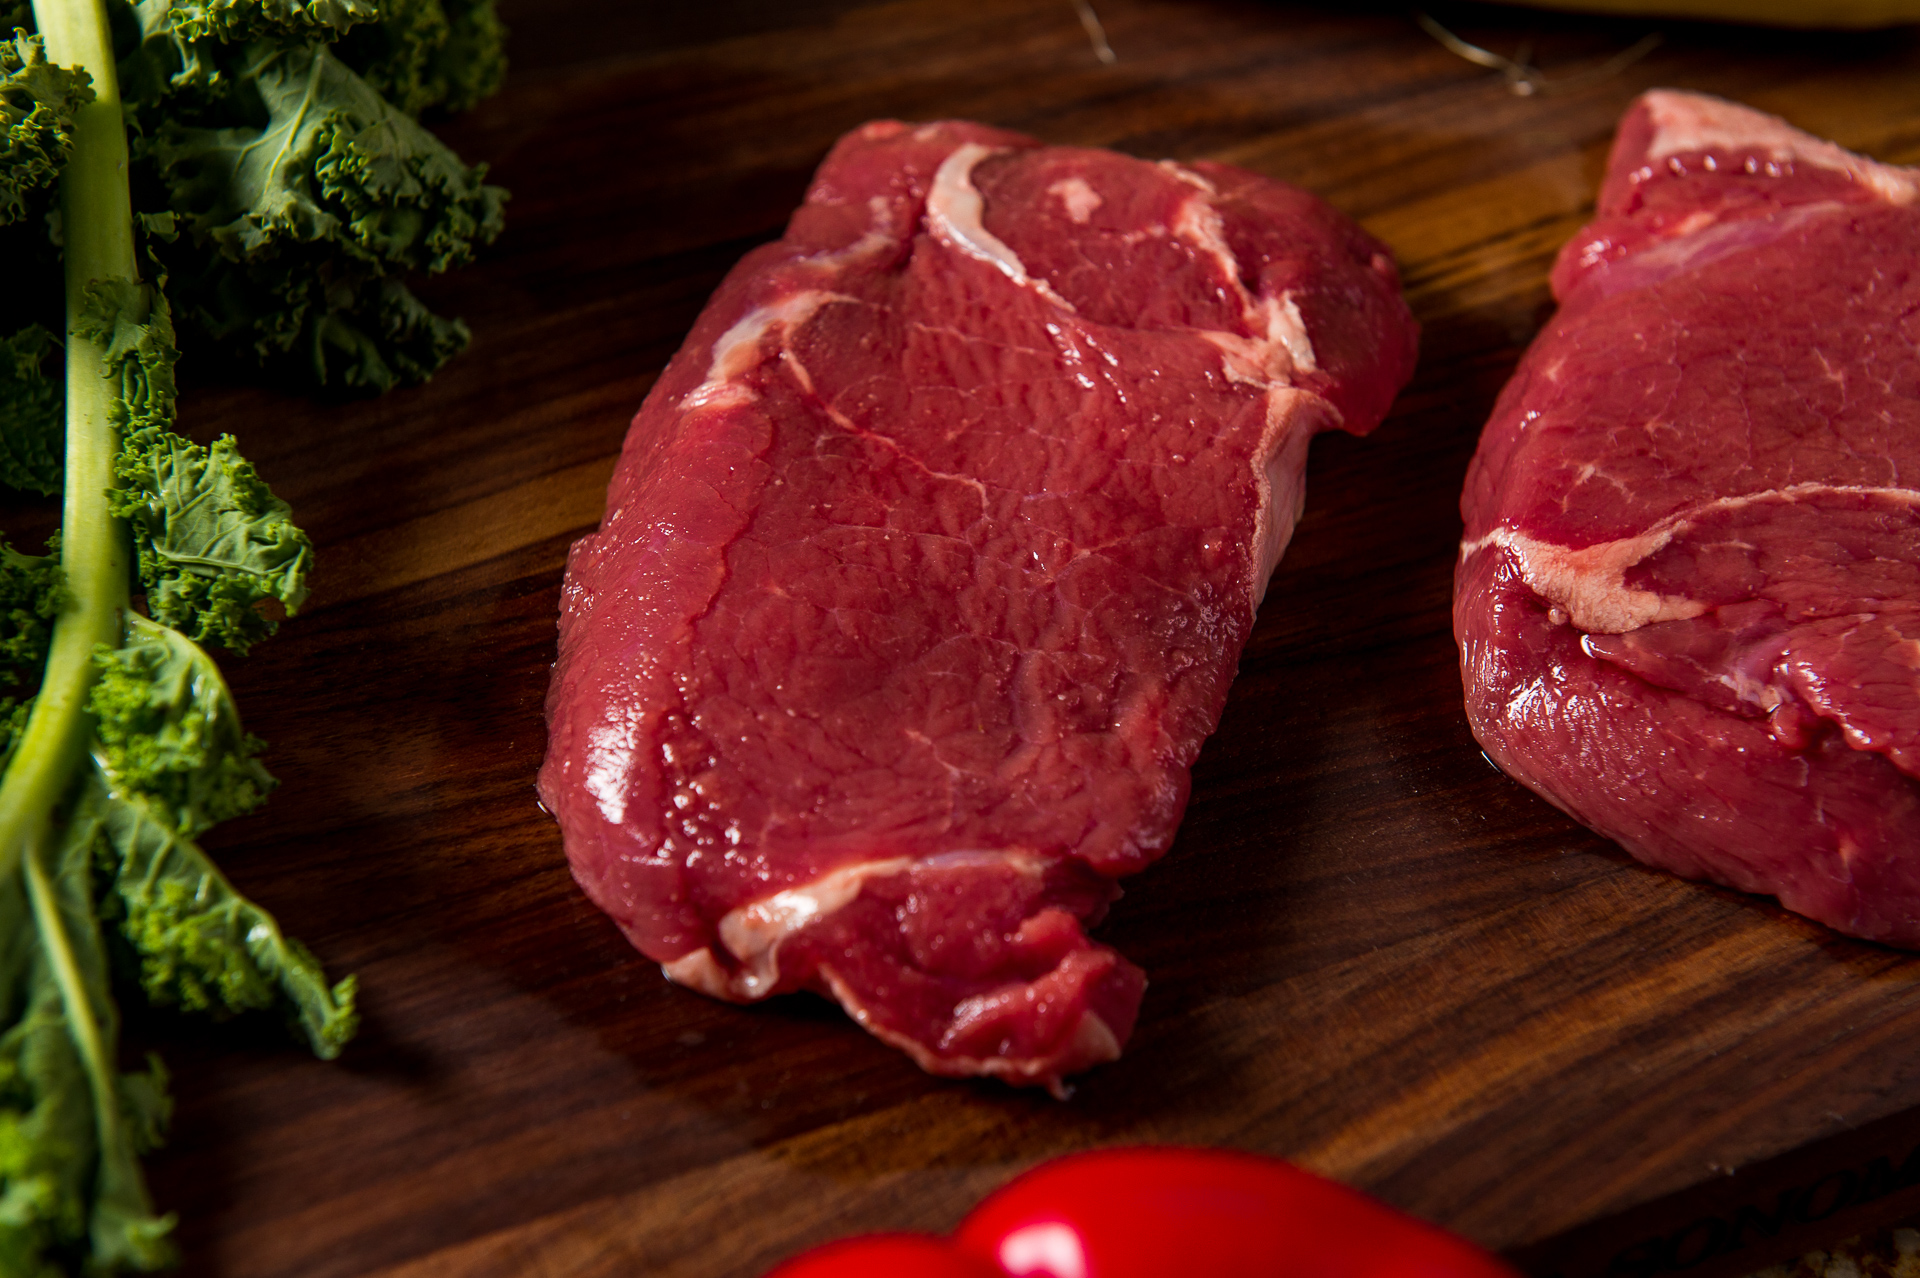 River Watch Beef Cuts - Sirloin Steaks - Focus Texture